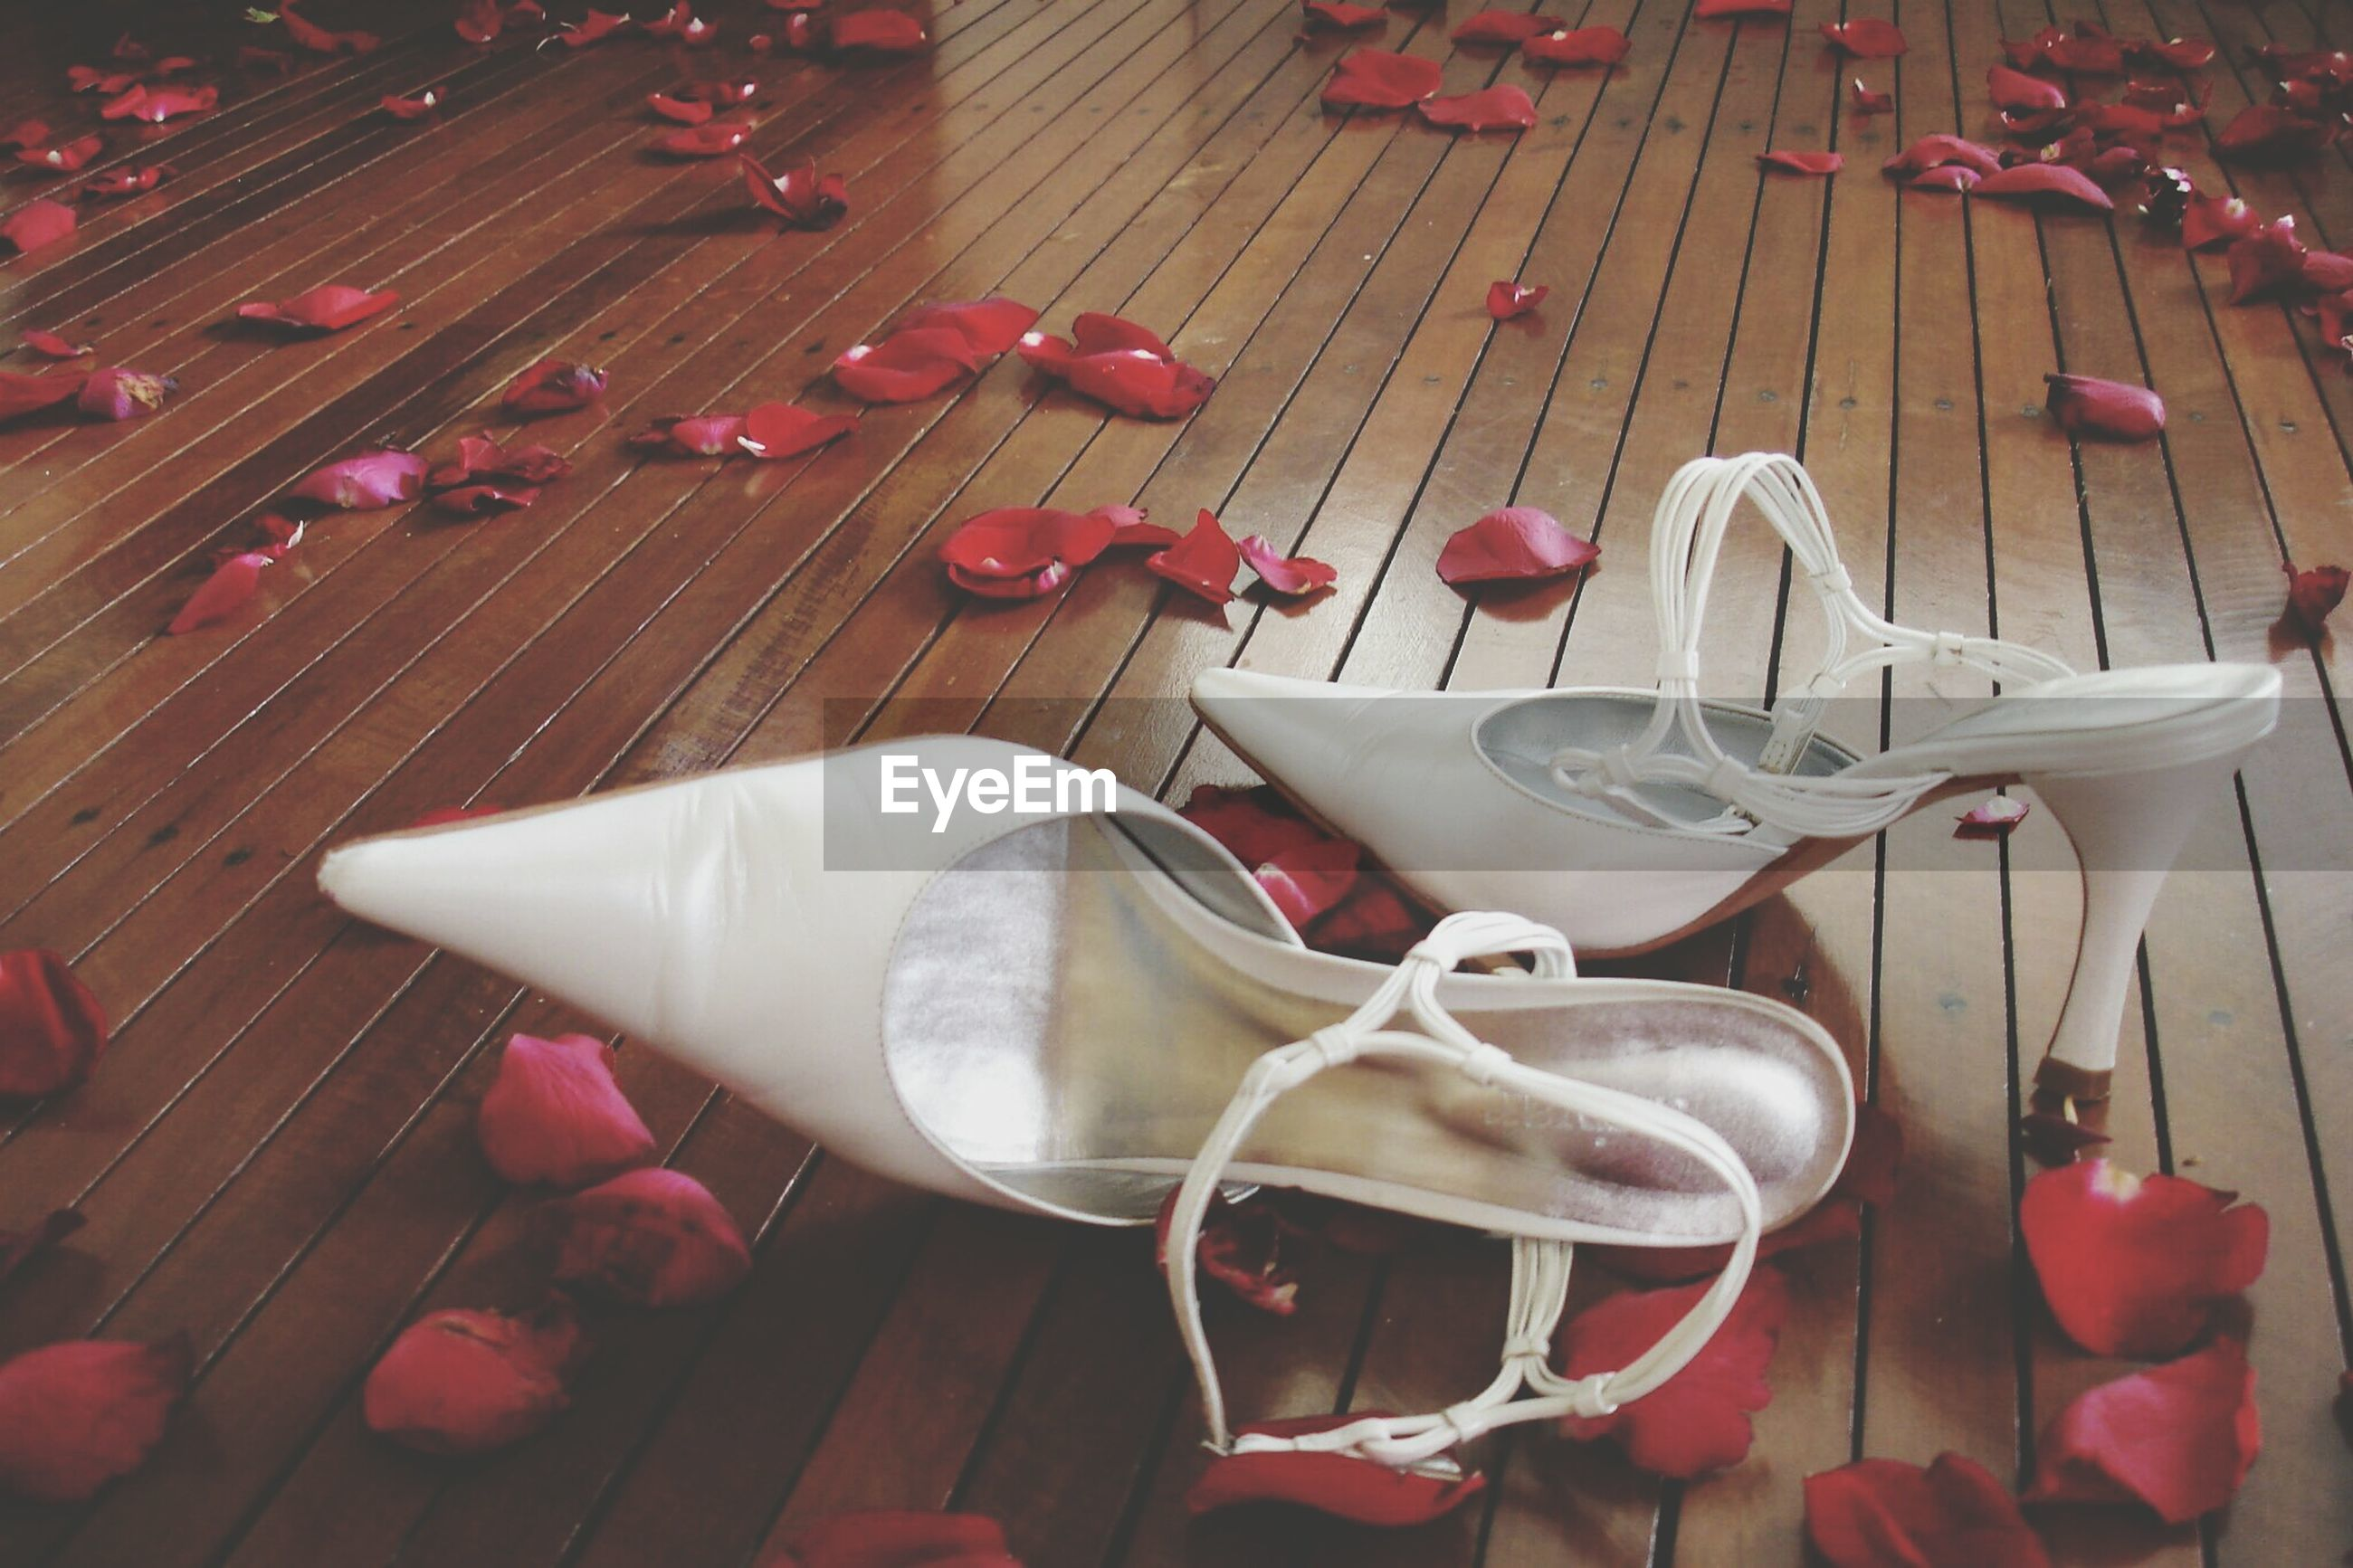 High heels and rose petals on wooden floor